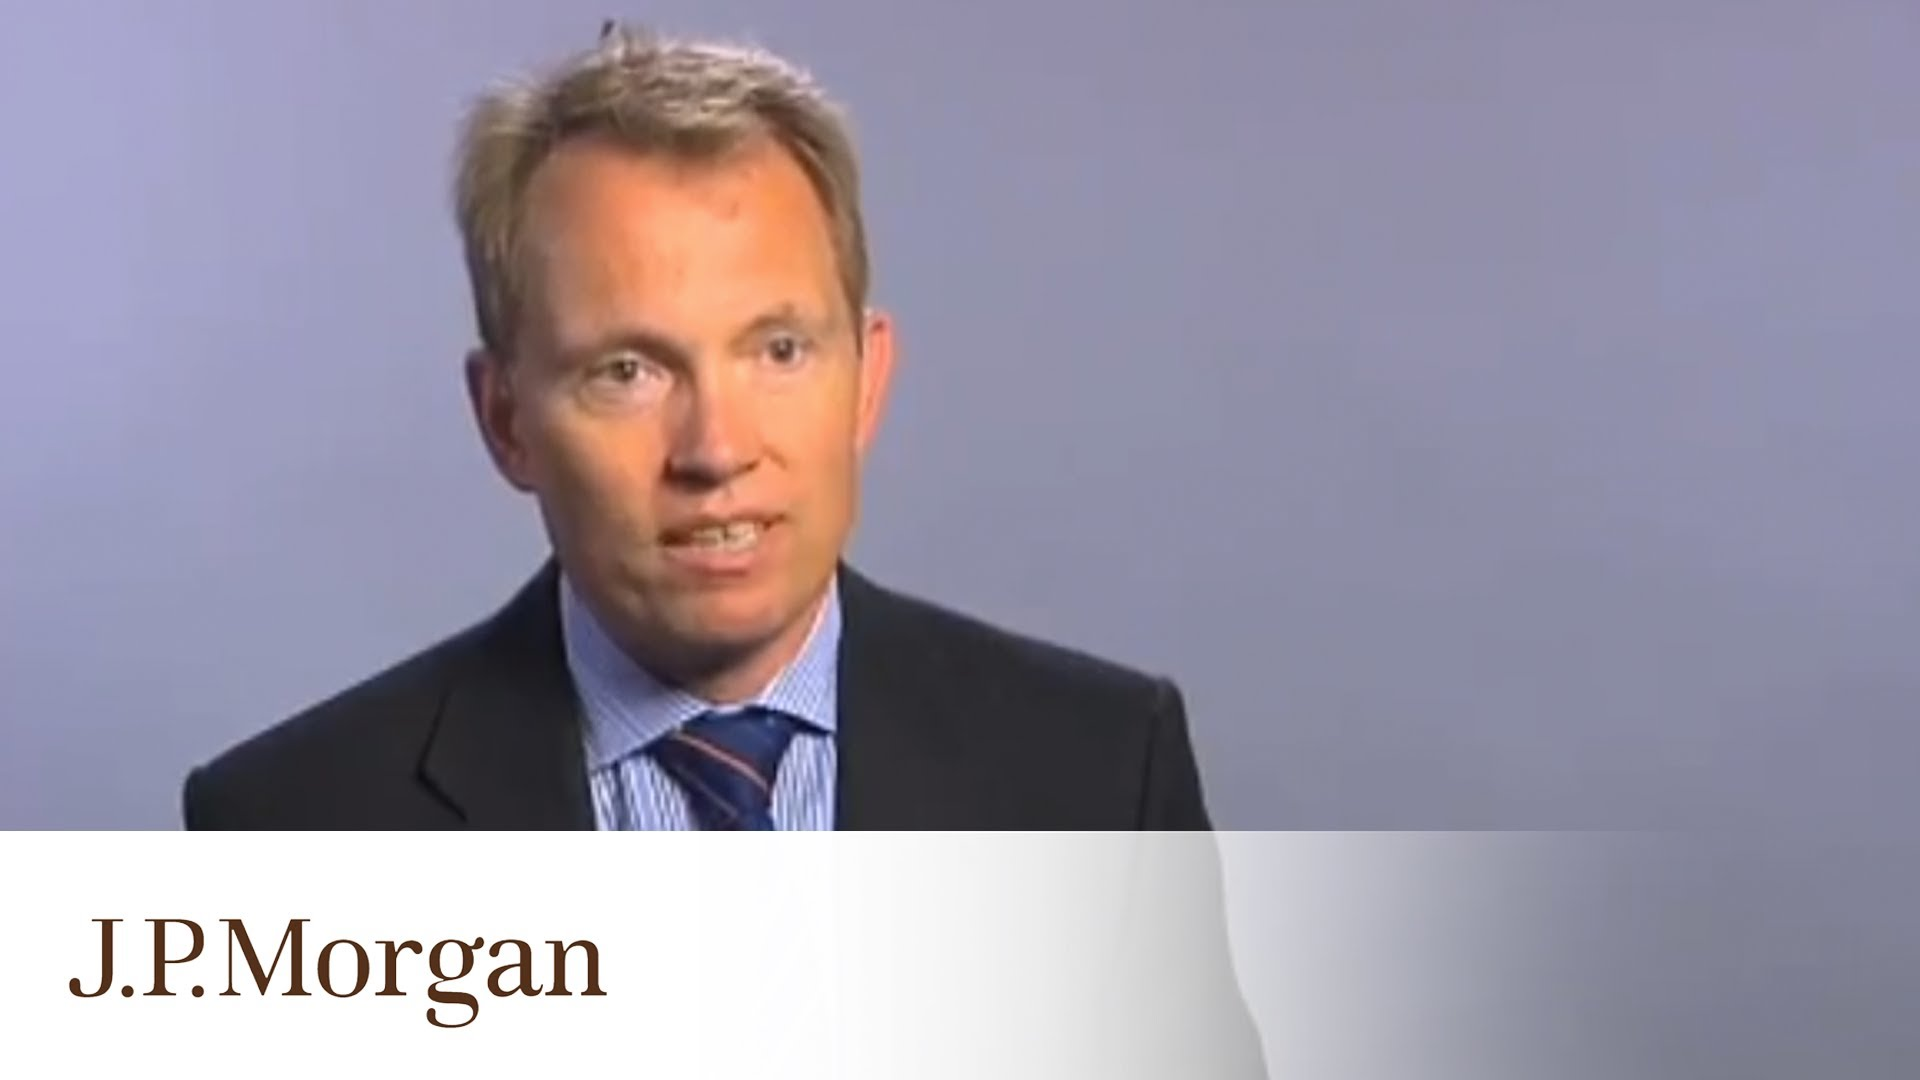 Senior Leaders Series: Simon Cooper | Managing Your Career | J.P. Morgan